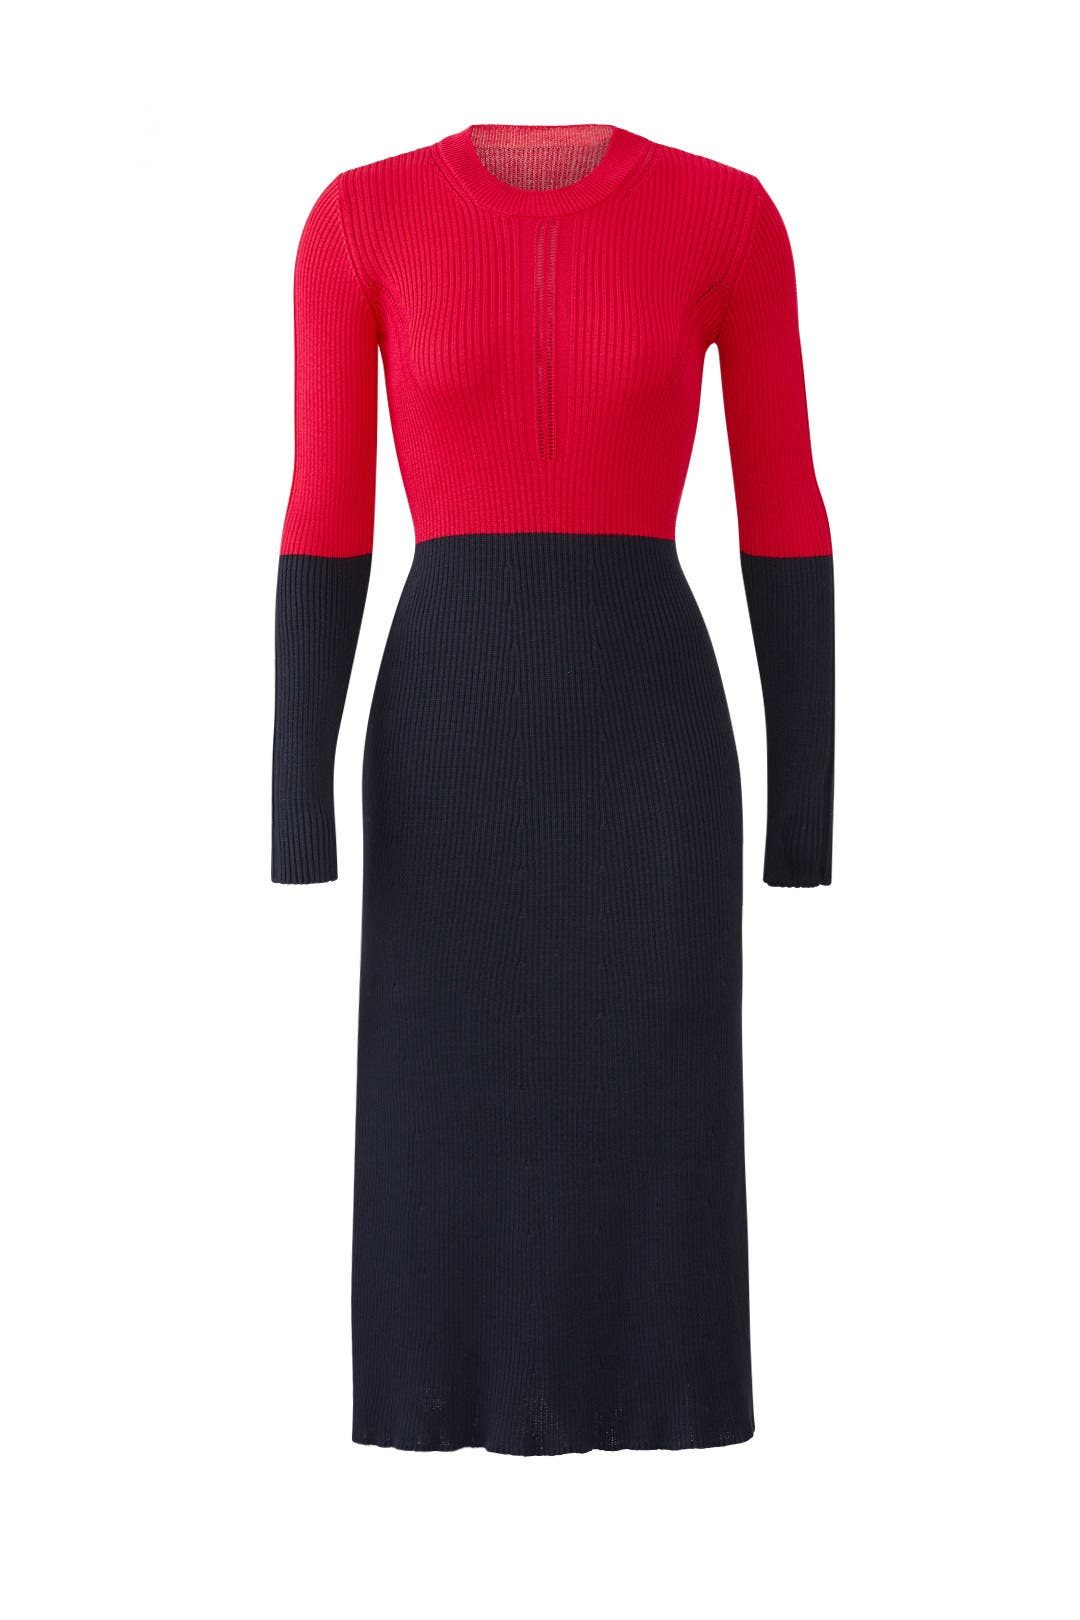 2e042d618a2 Long Sleeve Colorblock Knit Dress by Cedric Charlier for  135